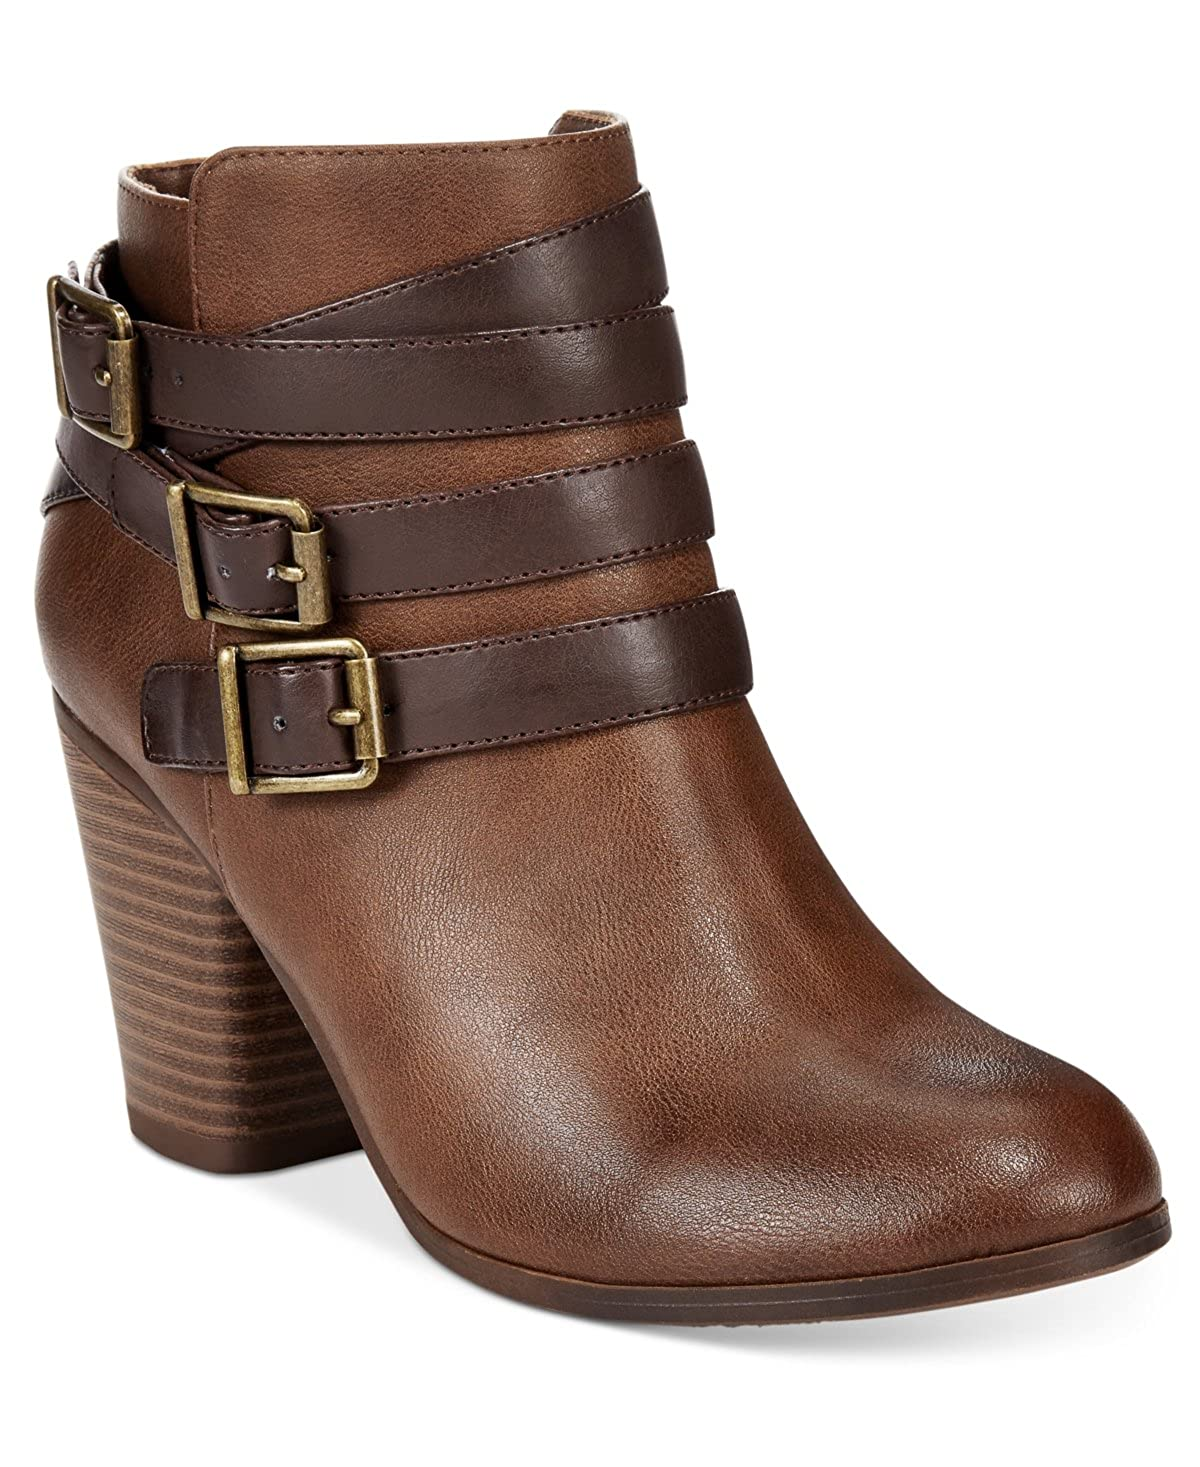 Material Girl Womens Fashionable and Stylish High Heel Ankle Booties Brown 6.5 M US